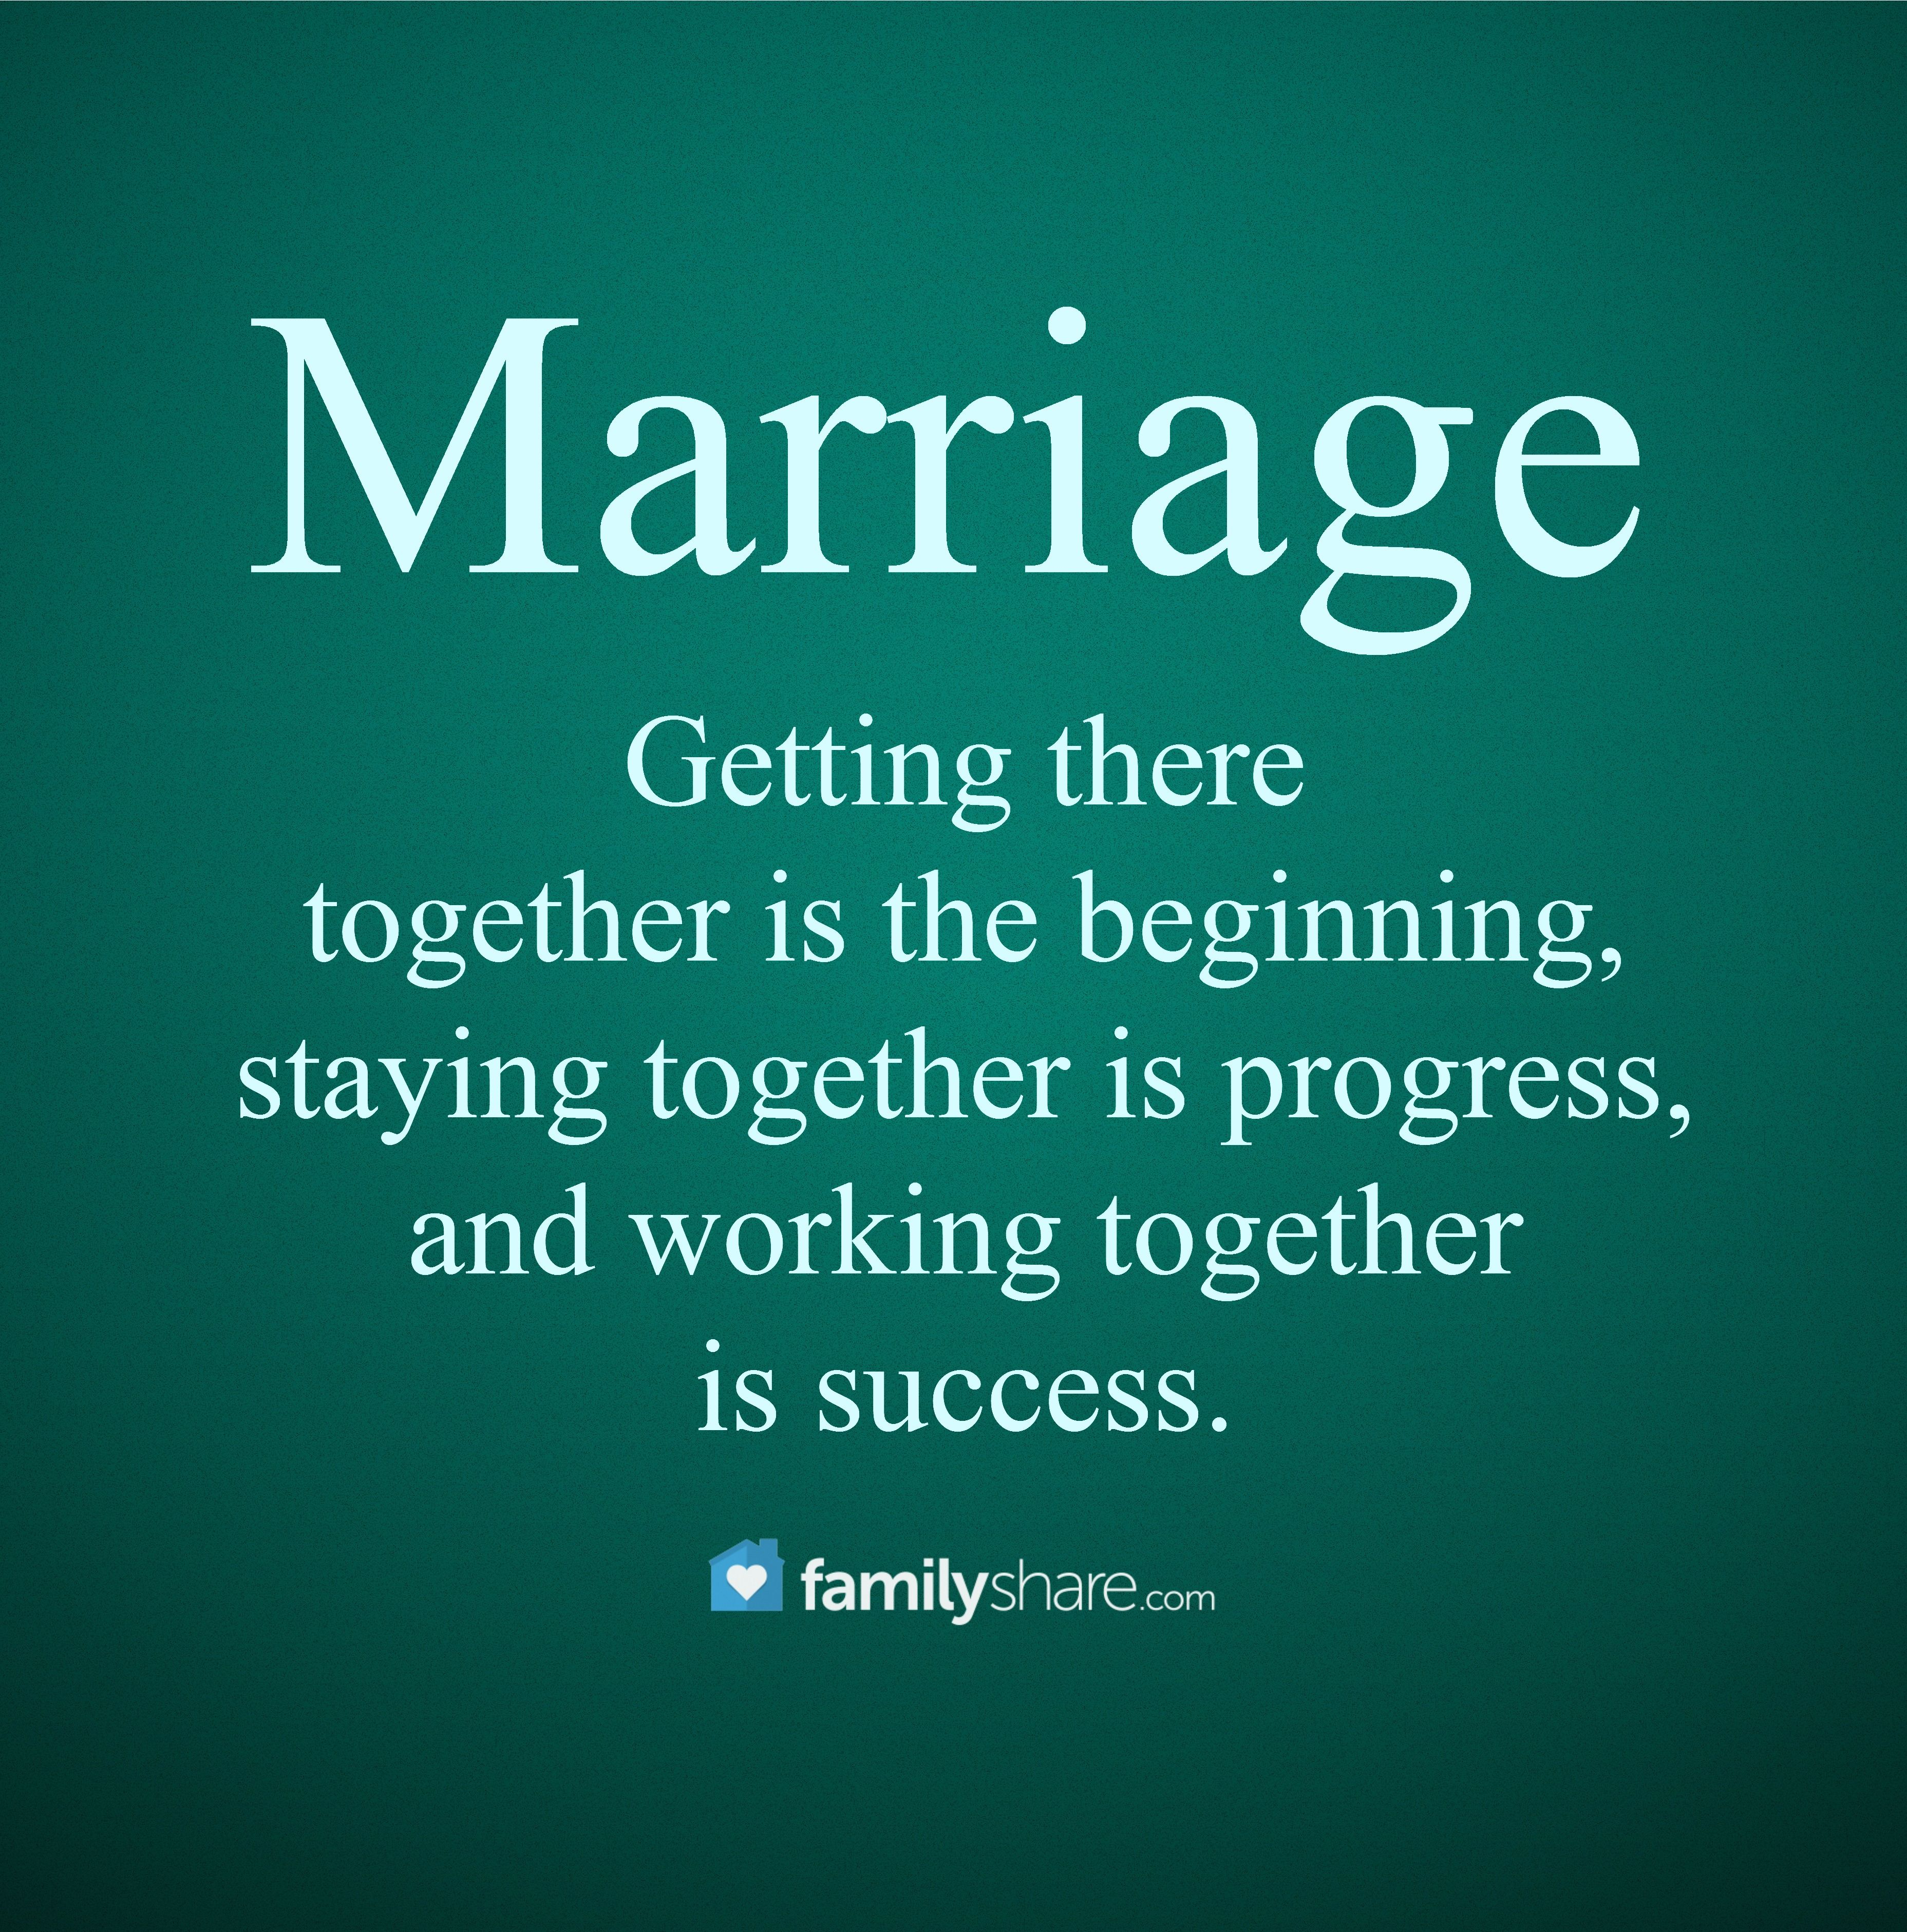 Getting there together is the beginning, staying together